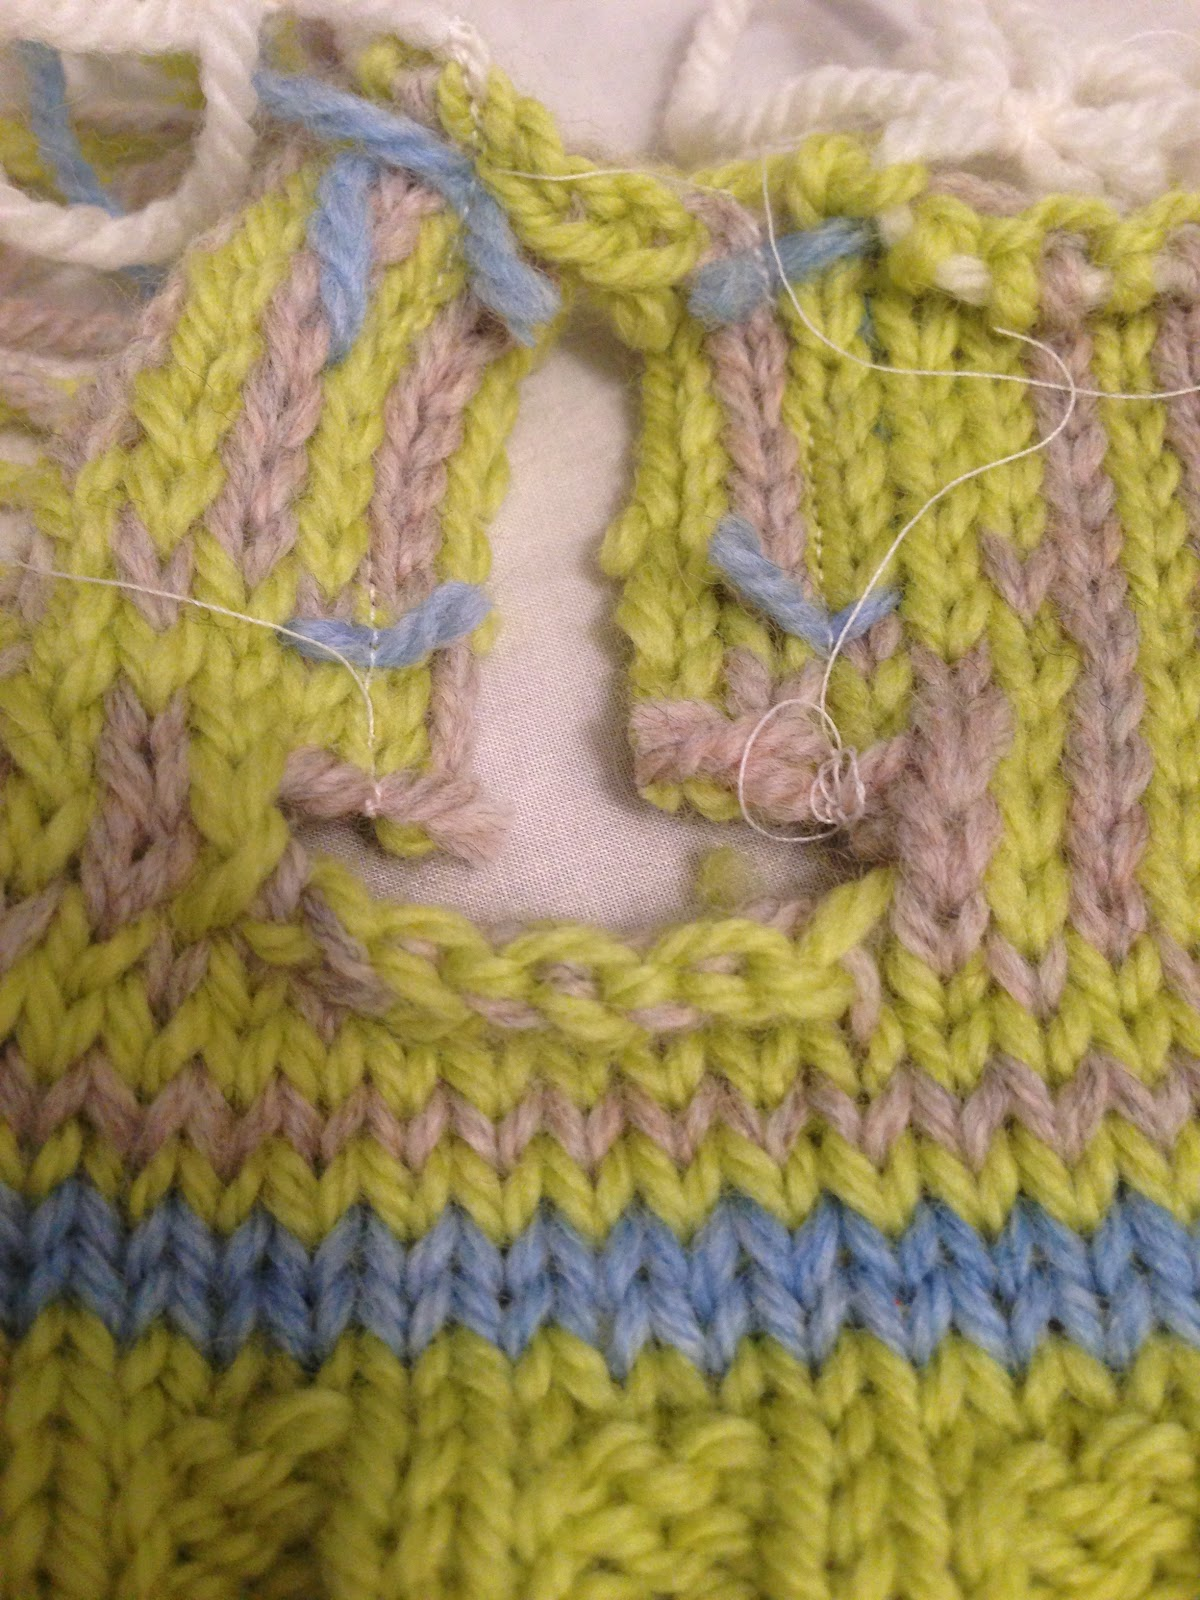 Knitting Picking Up Stitches For Band : Wildflower Wool Knits: Three Days with Lucy Neatby!